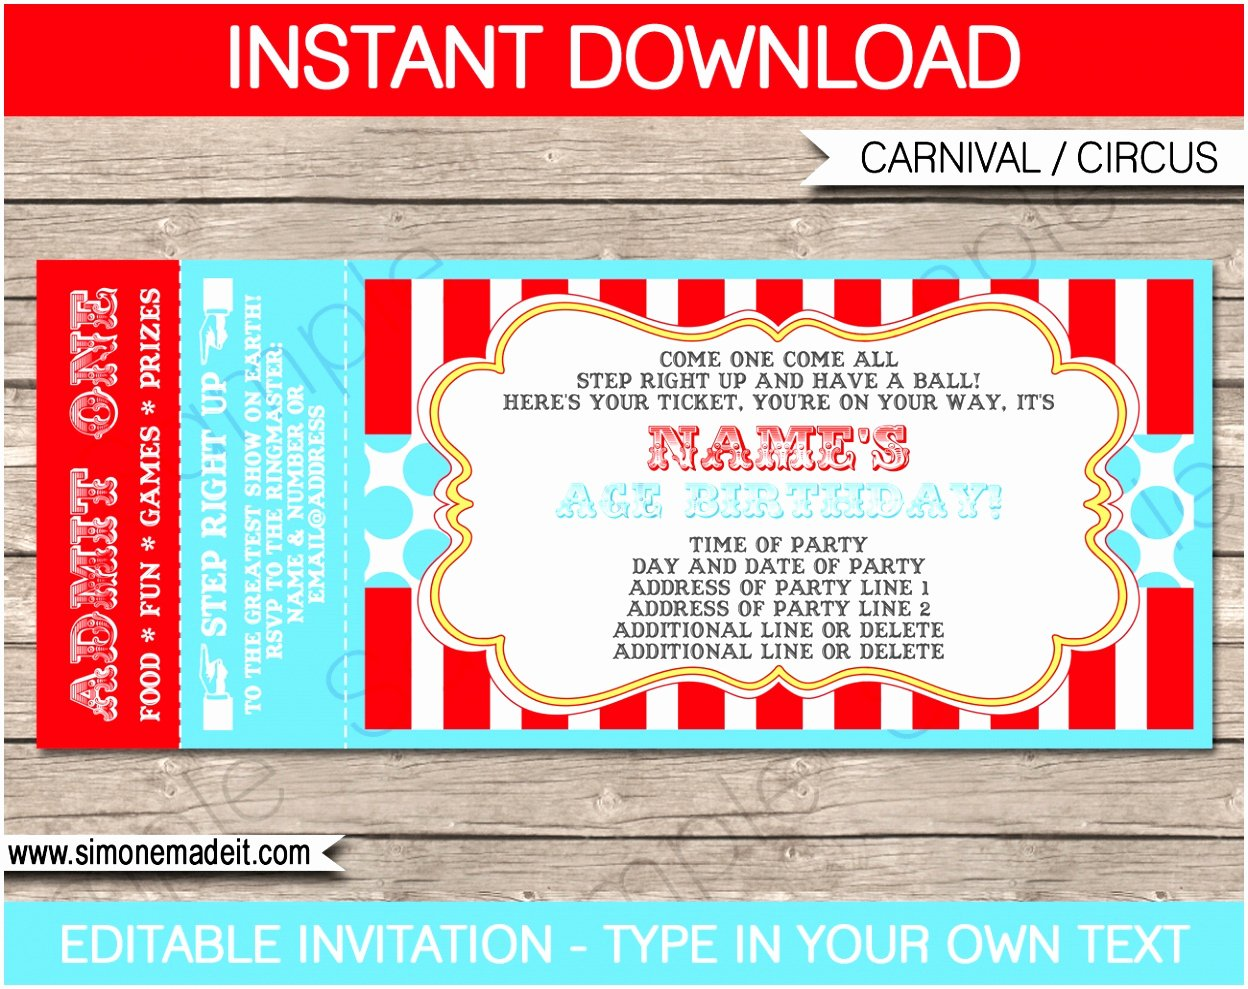 Carnival Invitation Template Free New 12 Carnival Ticket Invitation Template Prwtv